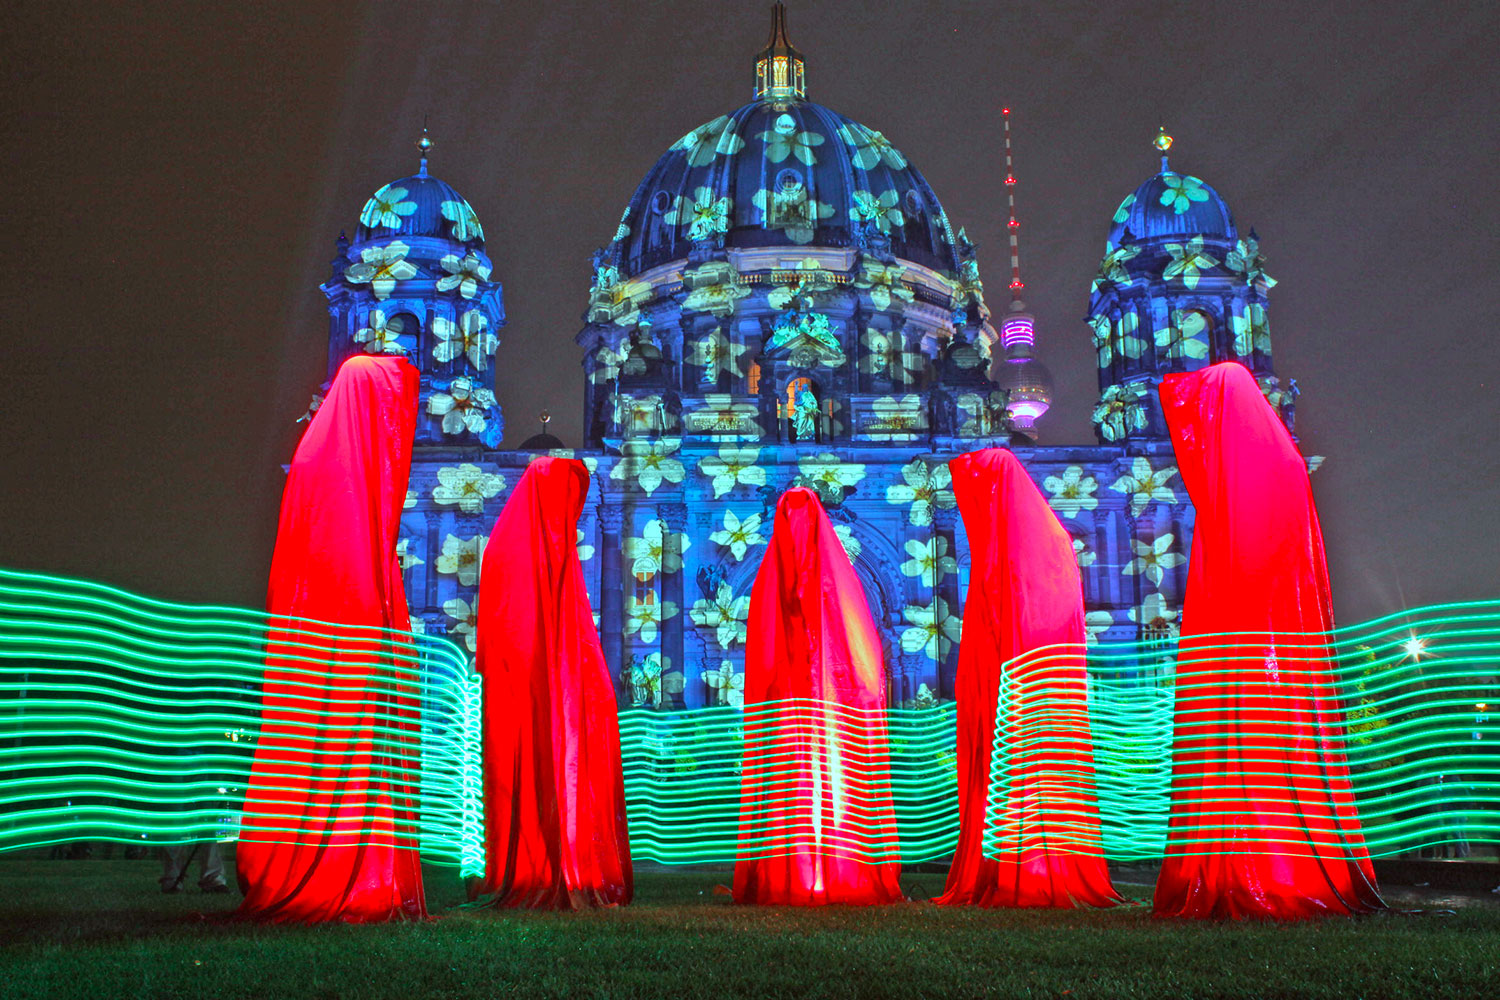 festival-of-lights-berlin-guardians-of-time-manfred-kielnhofer-light-art-sculpture-berliner-dom-lustgarten-waechter-6851y